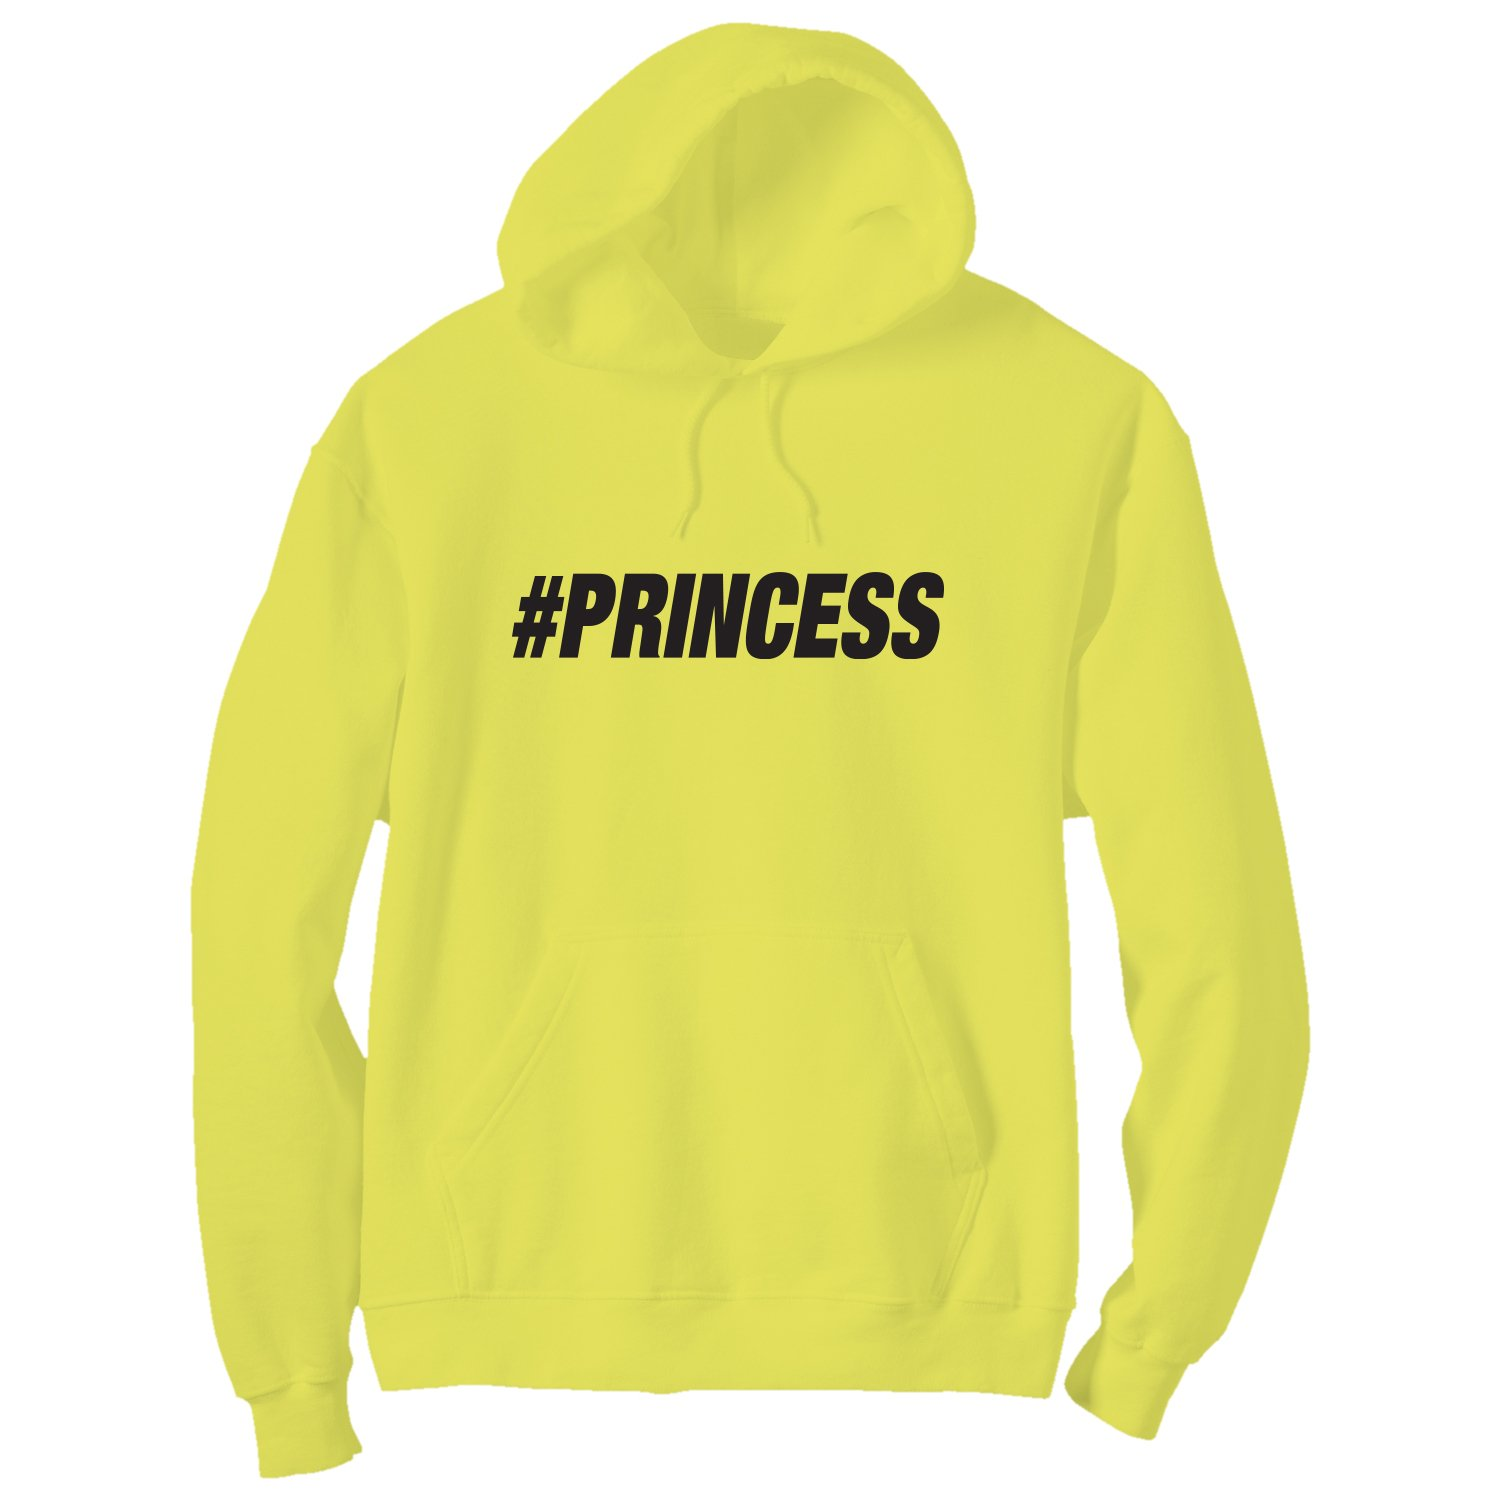 #PRINCESS Bright Neon Yellow Adult Pullover Hoodie XX-Large